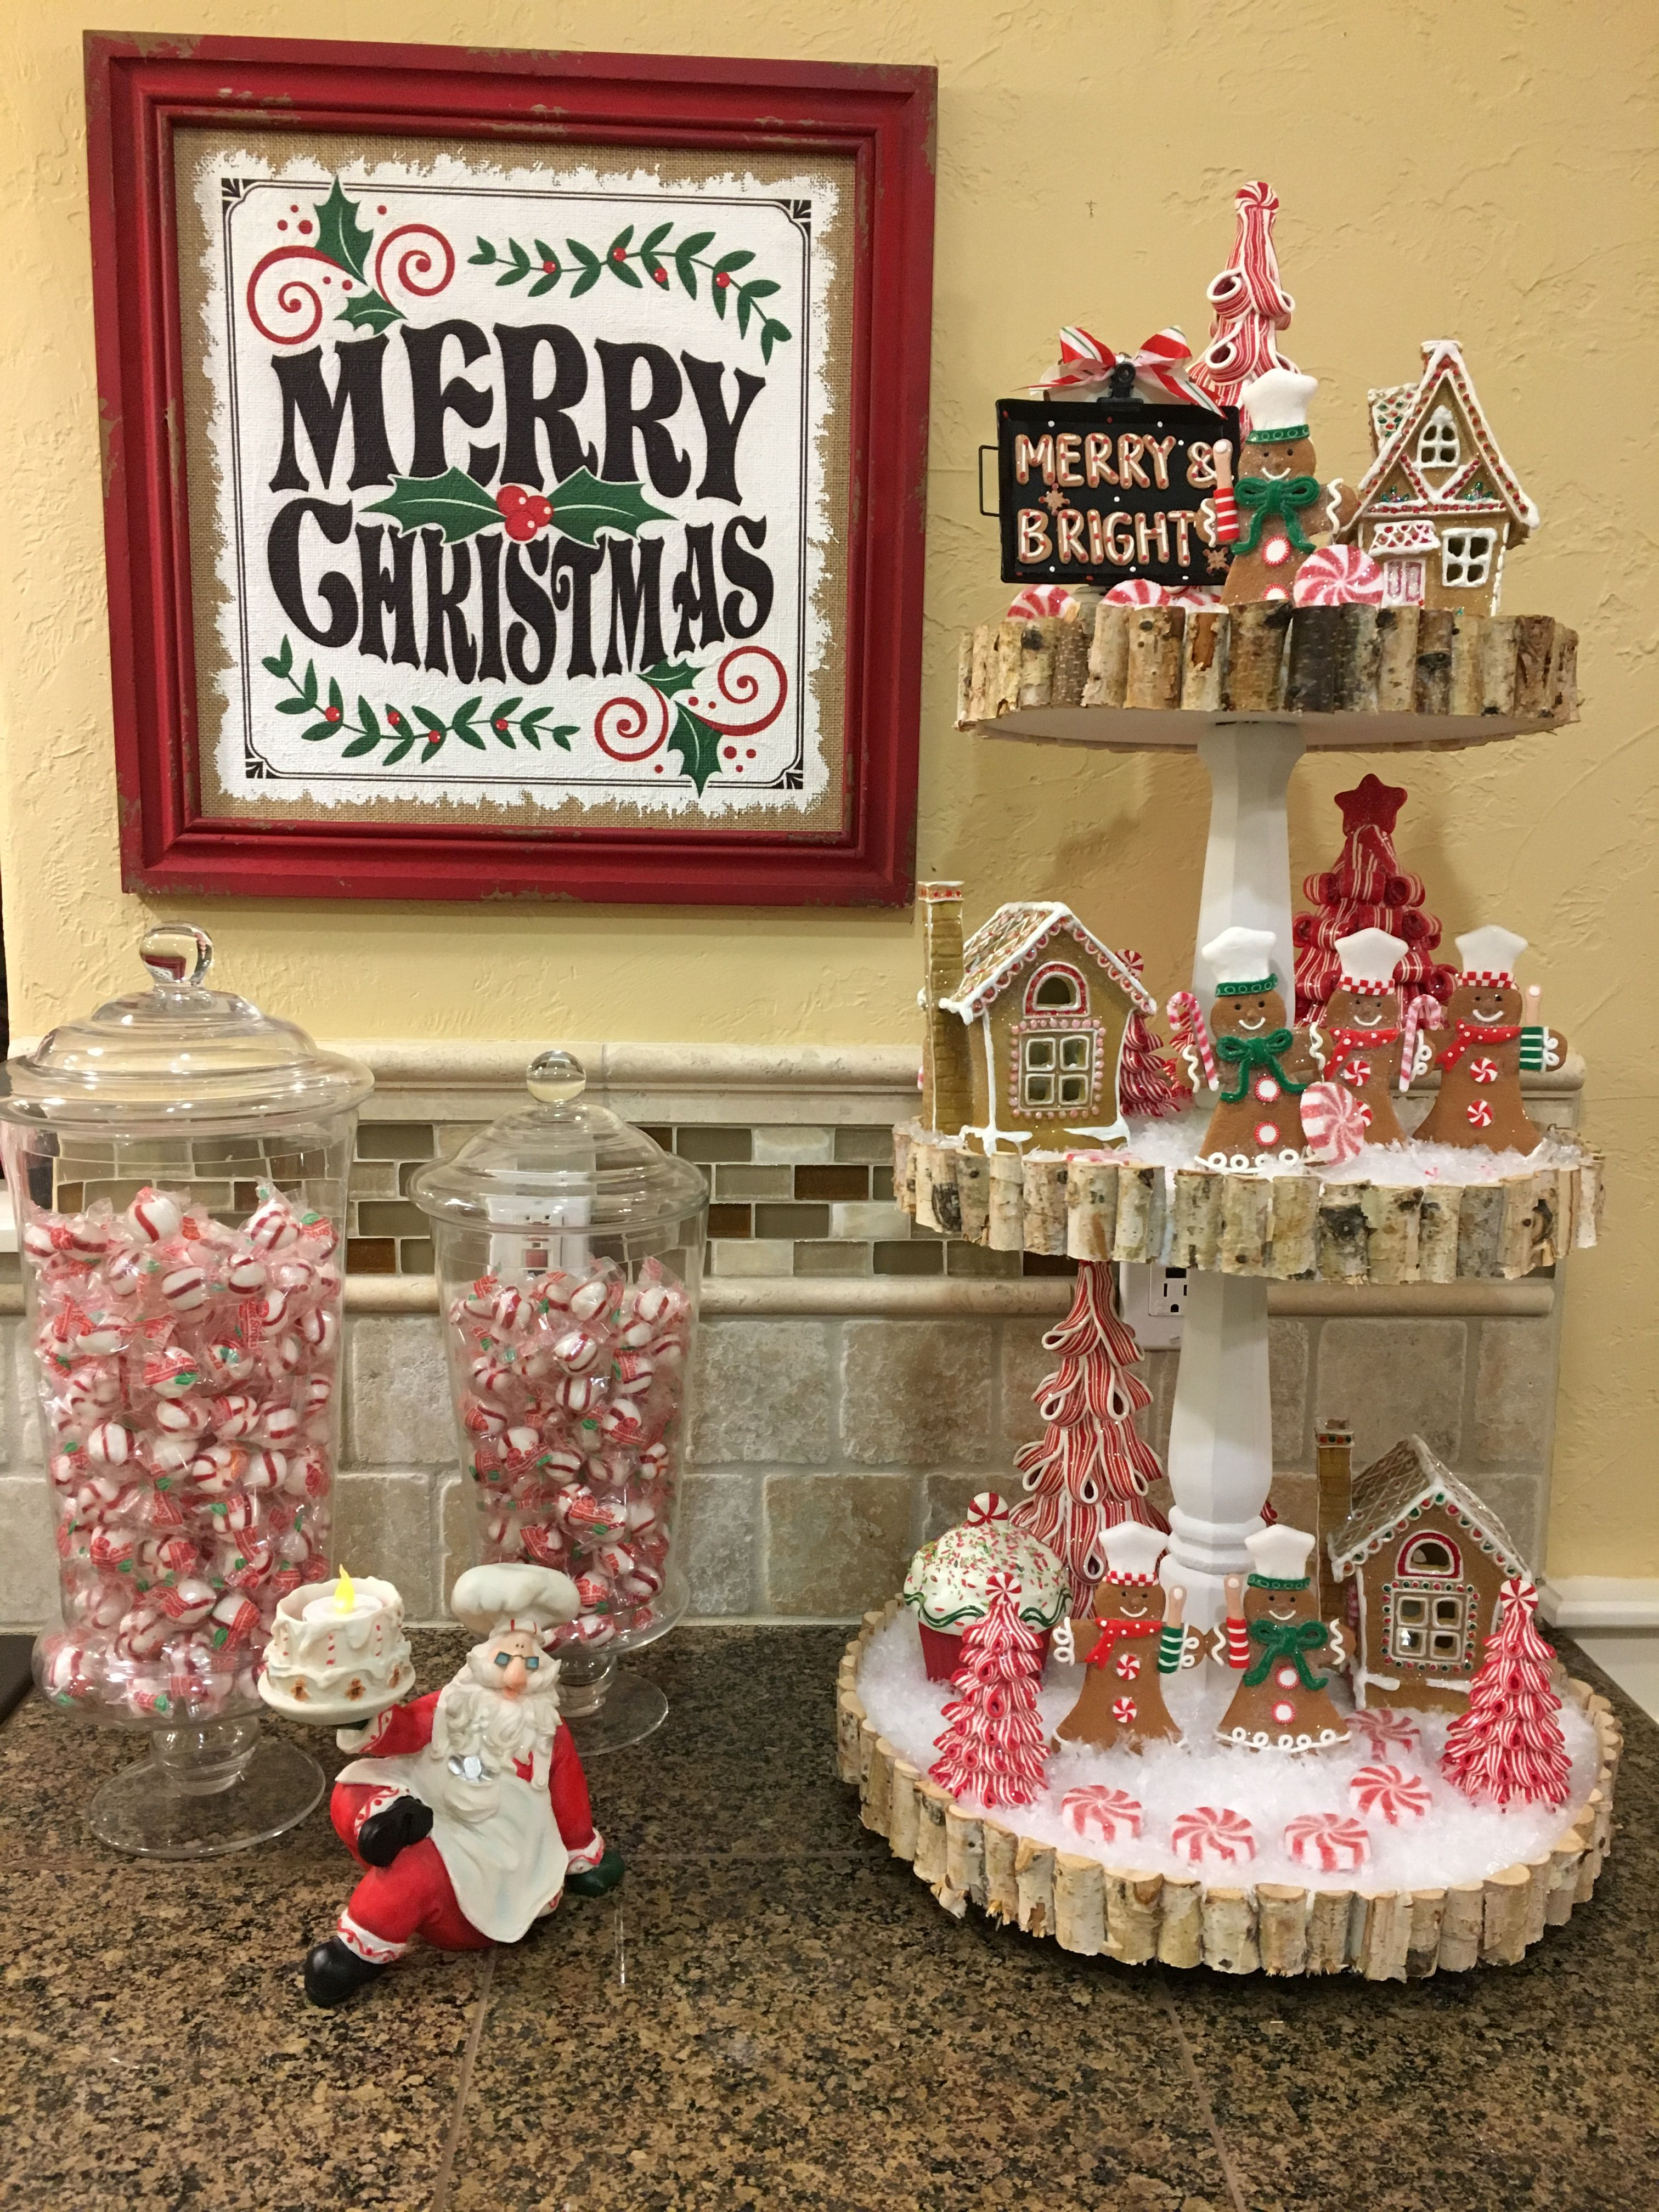 Christmas Fun Cookies Gingerbread Houses Santa And Candy I Wanted A Little Gingerbread Christmas Decor Christmas Kitchen Decor Dollar Tree Christmas Decor